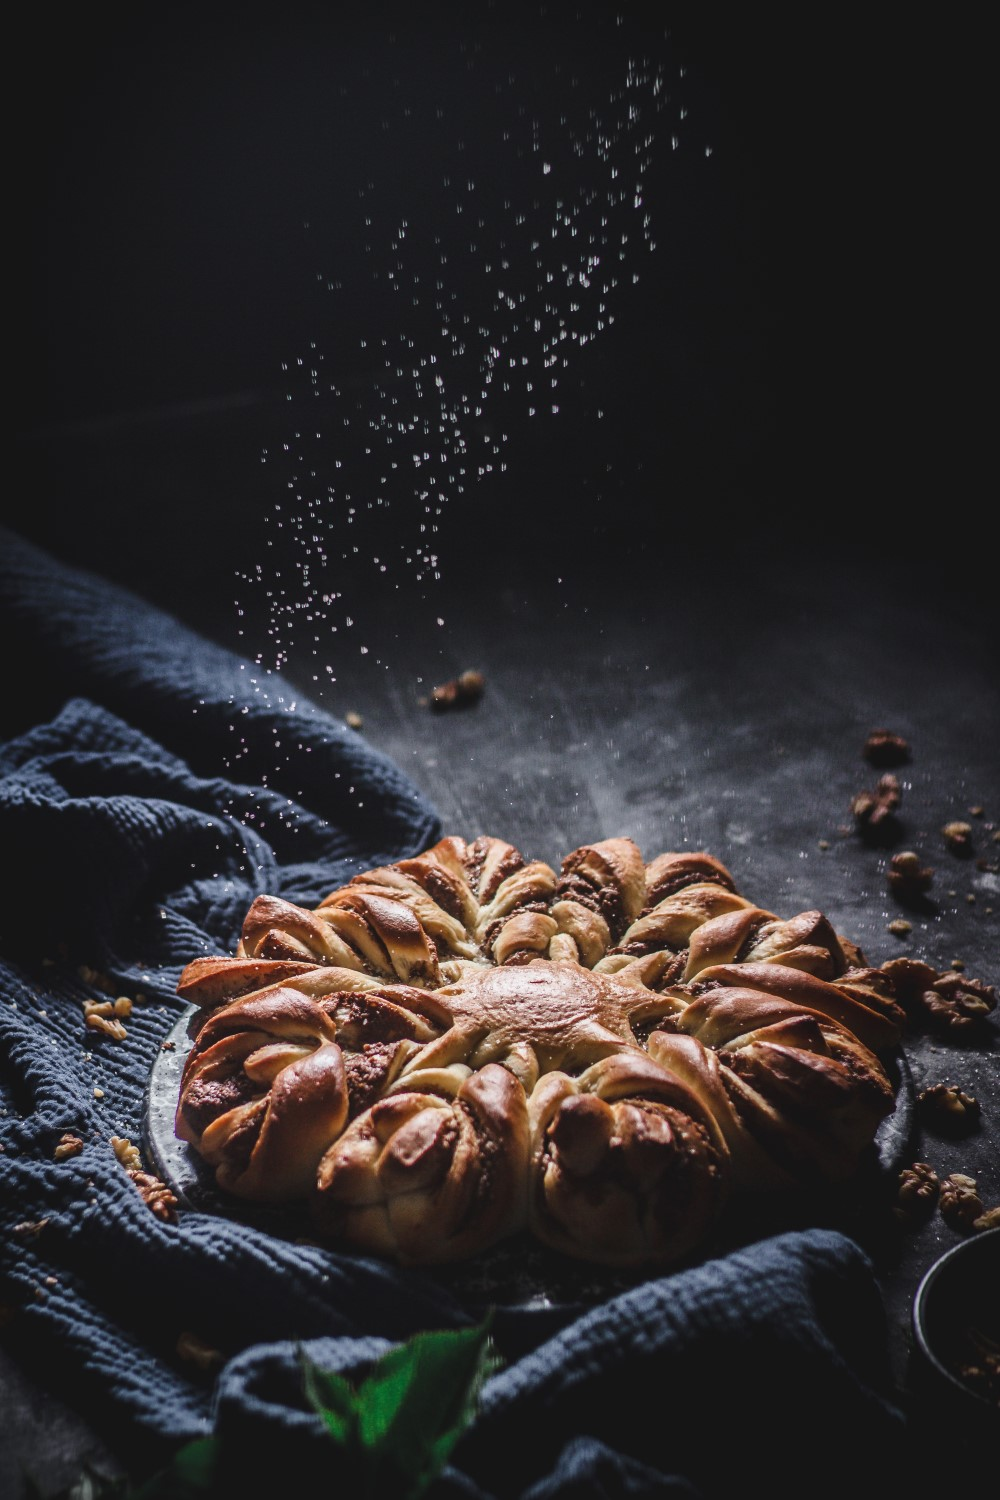 With these nine food photography composition techniques you'll be able to add an extra zing to your photos.